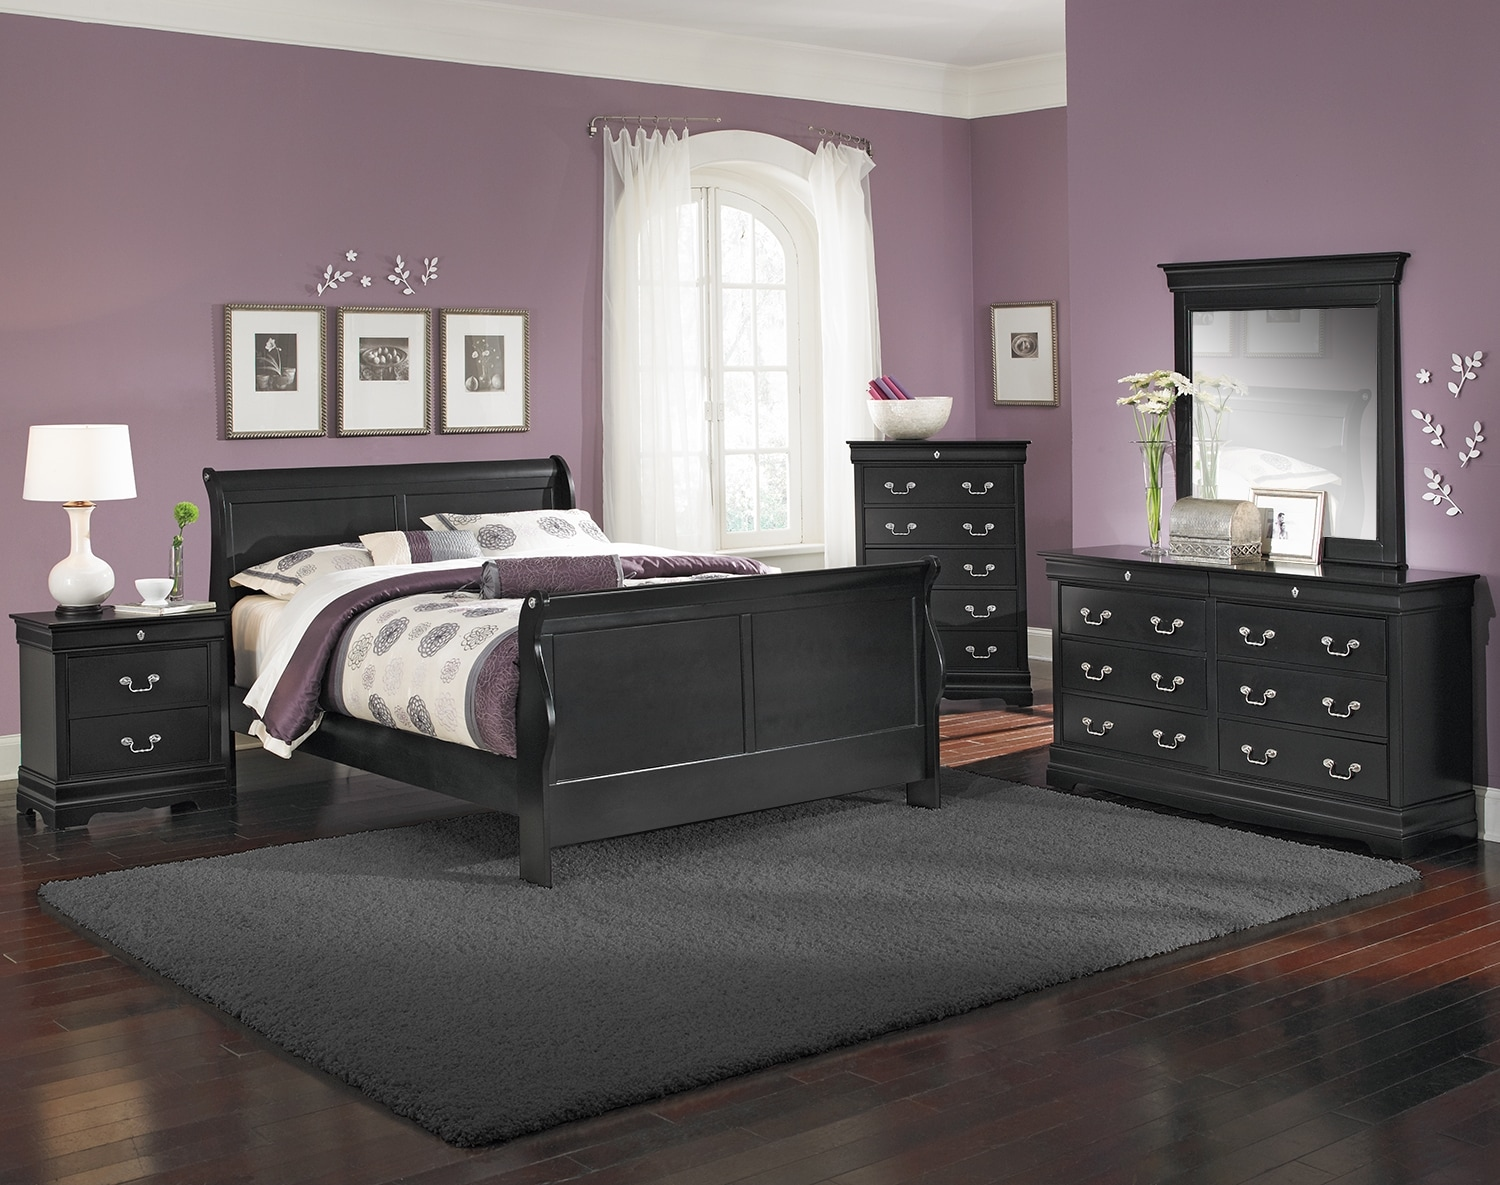 The Neo Classic Youth Bedroom Collection - Black